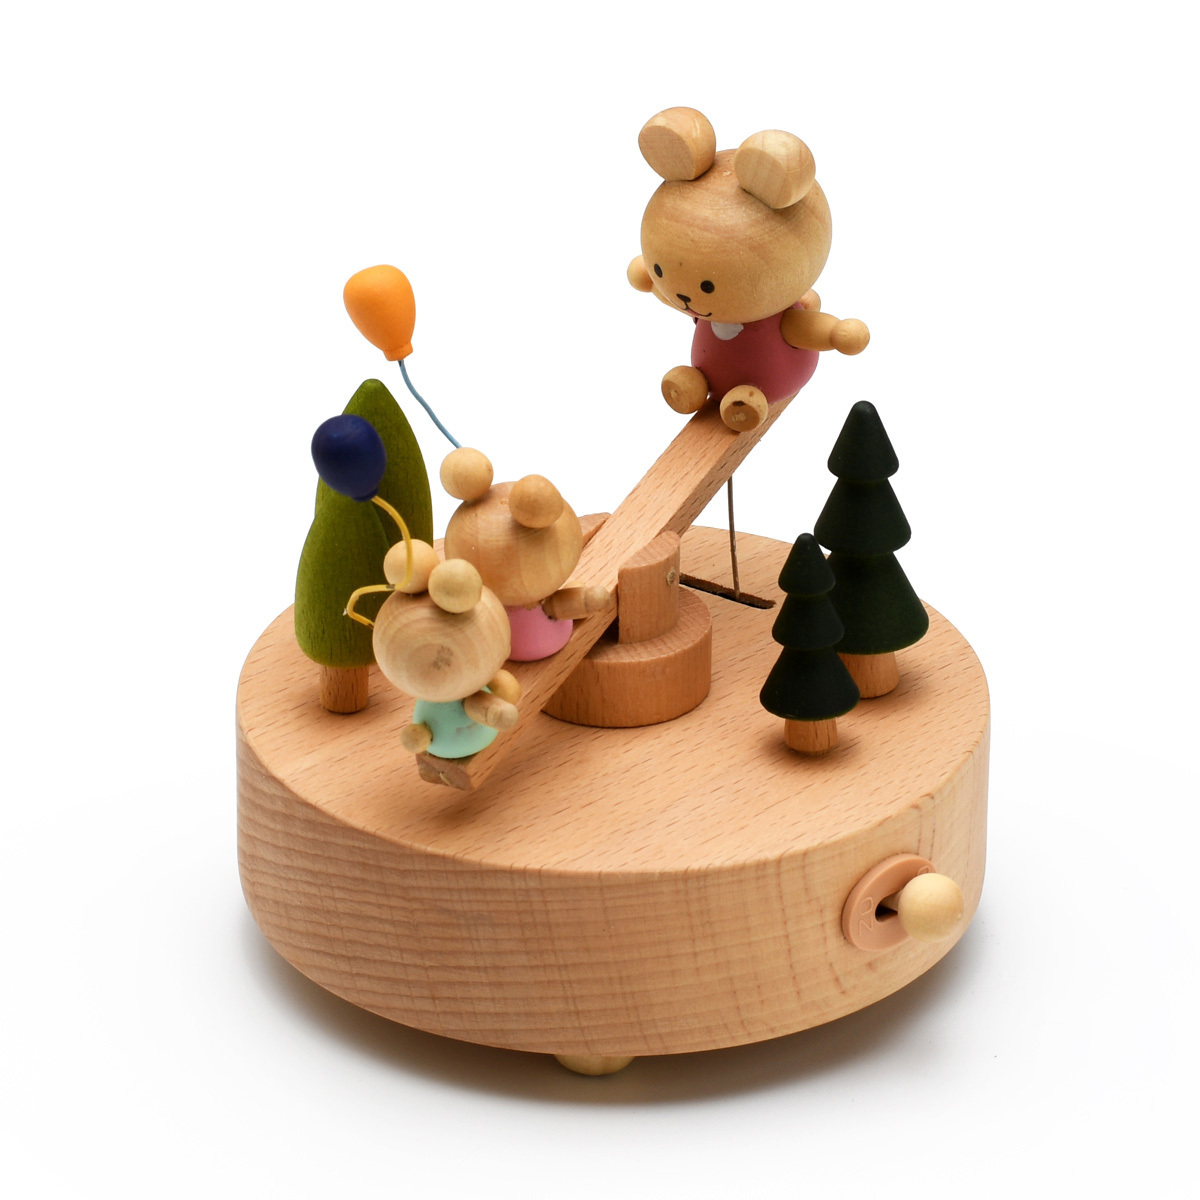 Animated 18 Note Wooden Cute Bears on a See-Saw Musical Keepsake